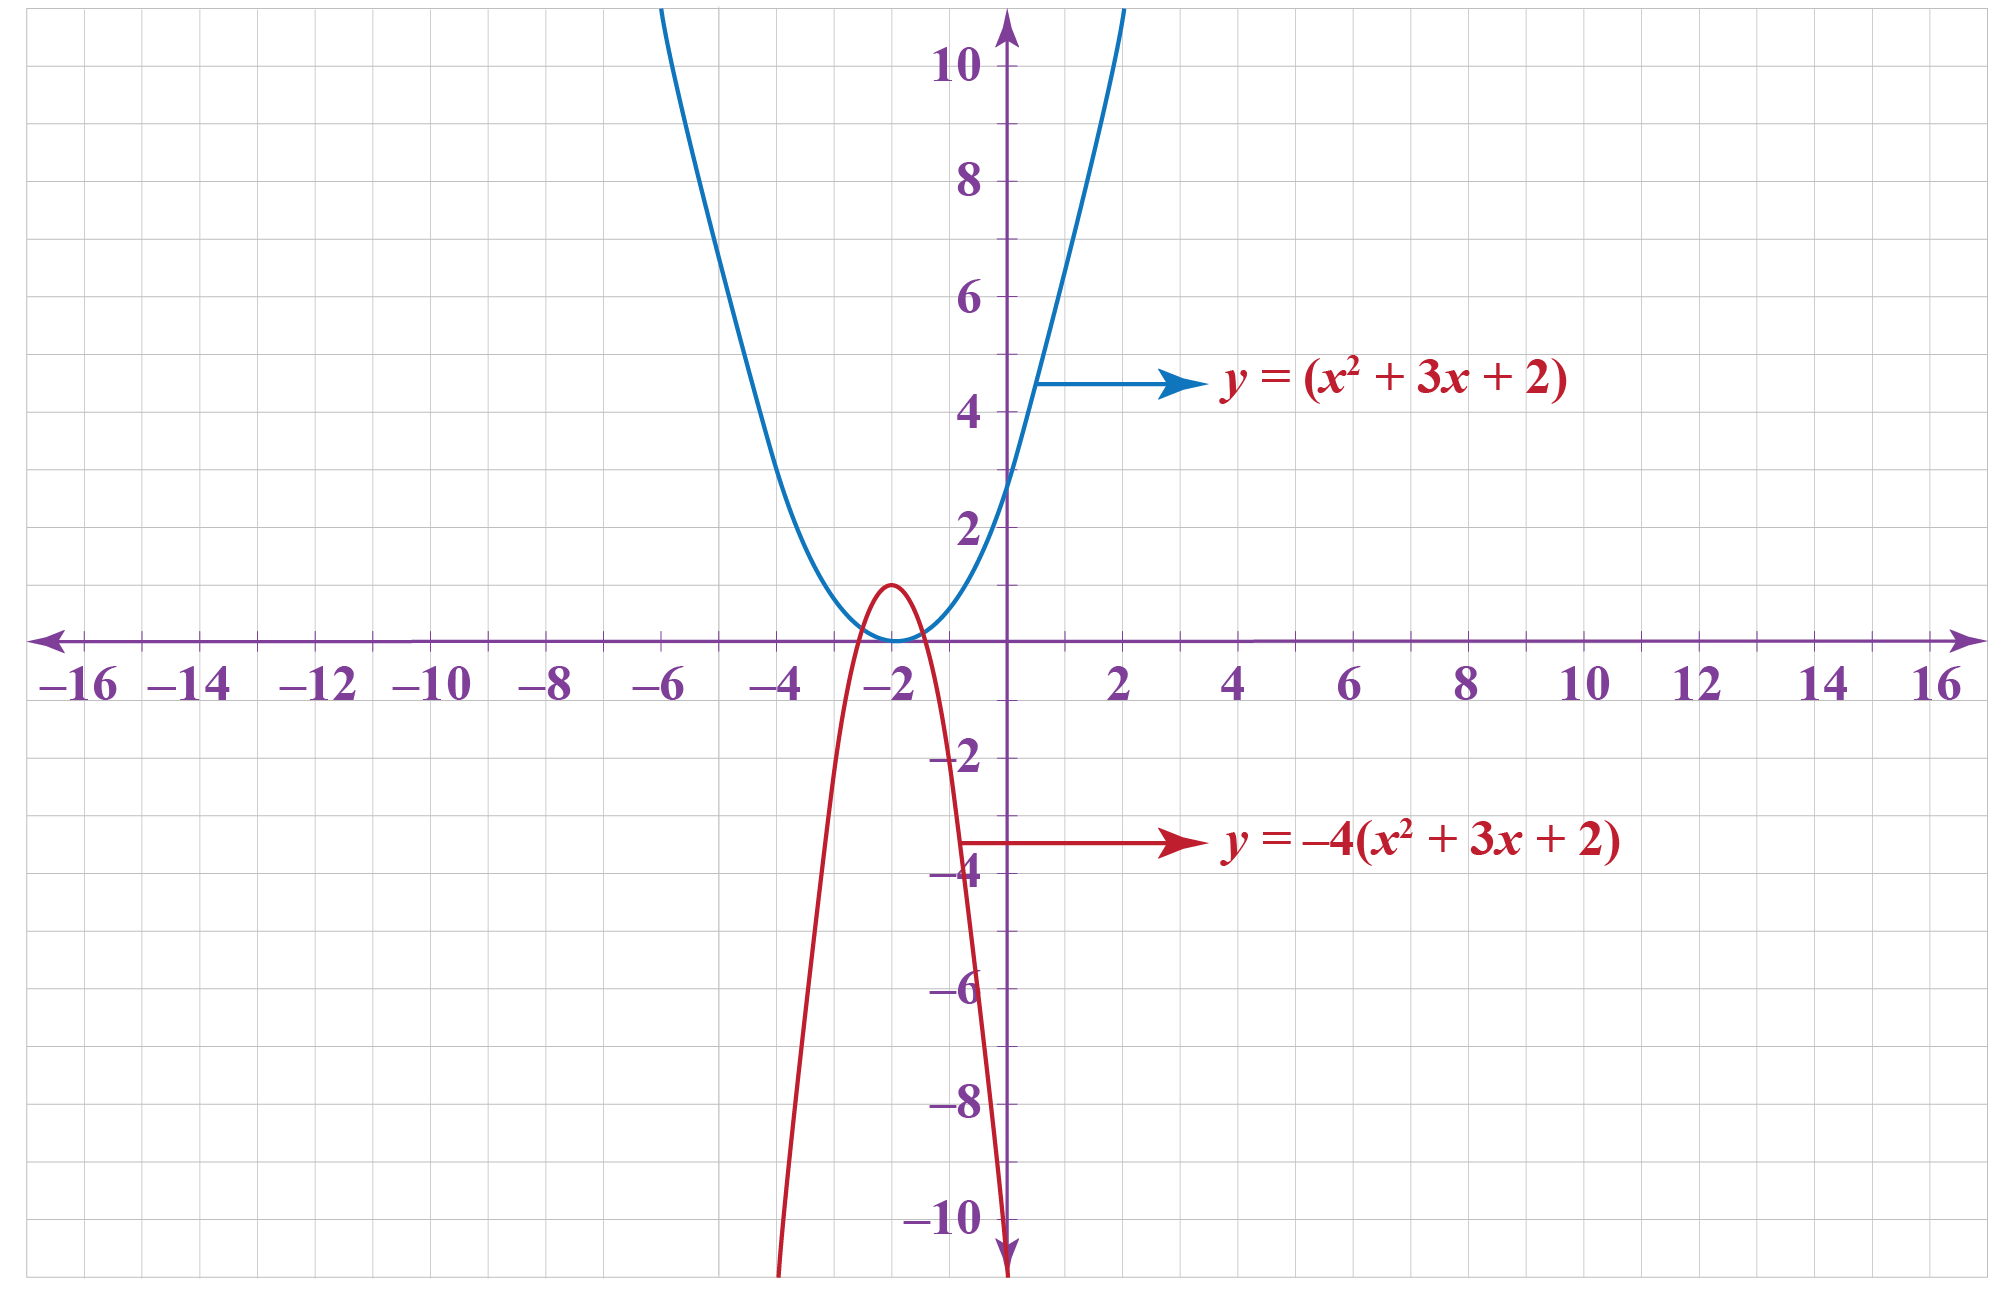 vertical scaling of y =(x^2 +3x+2)